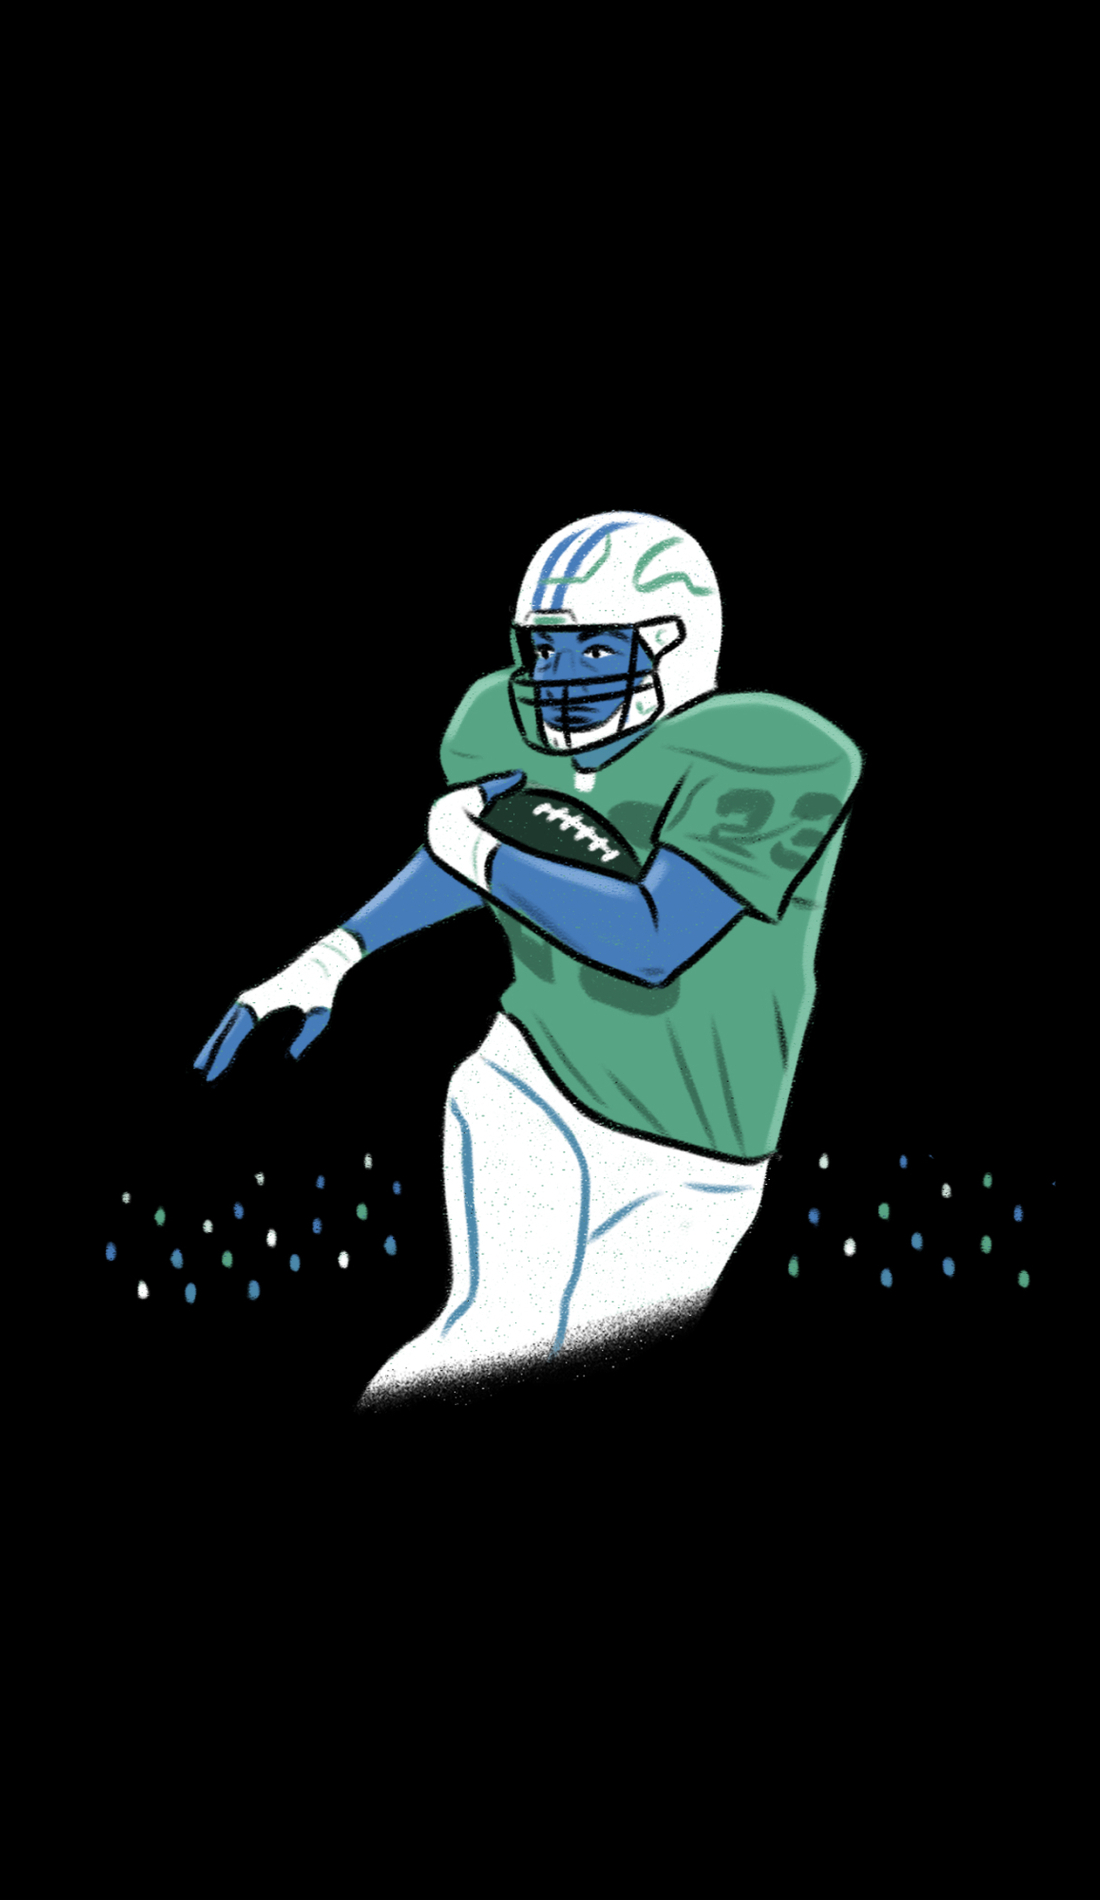 A Appalachian State Mountaineers Football live event